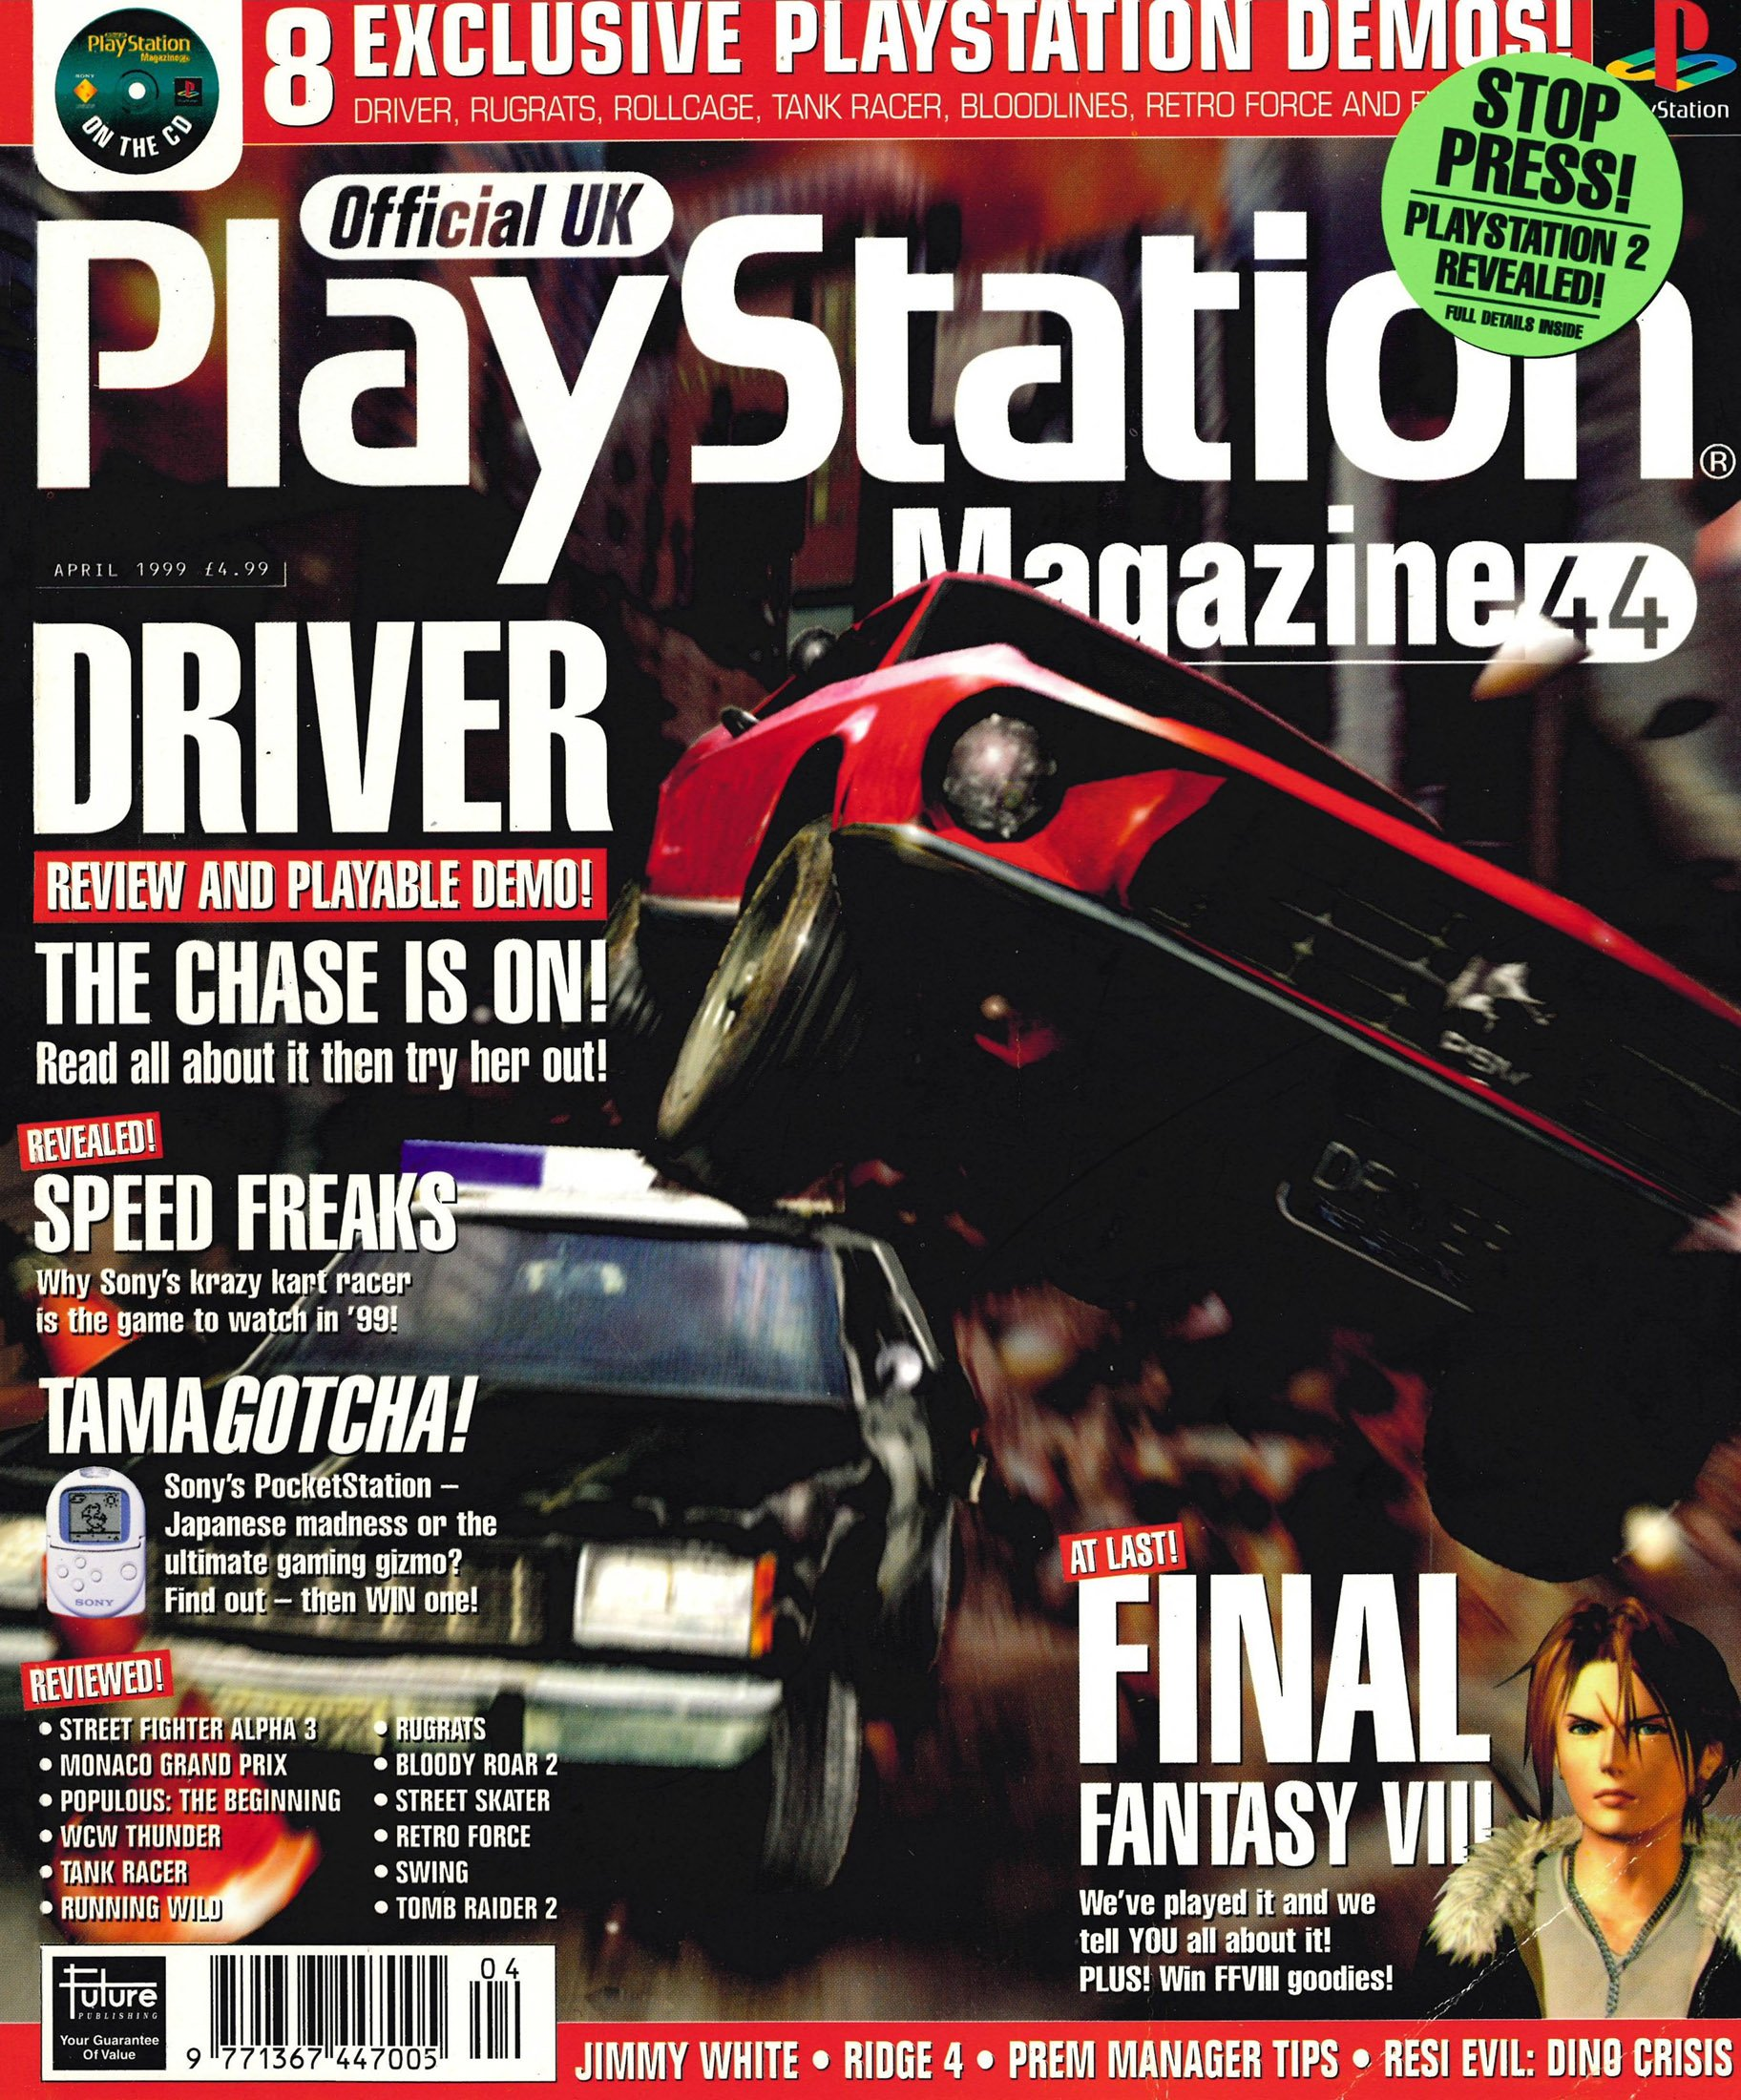 Official UK PlayStation Magazine Issue 044 (April 1999)